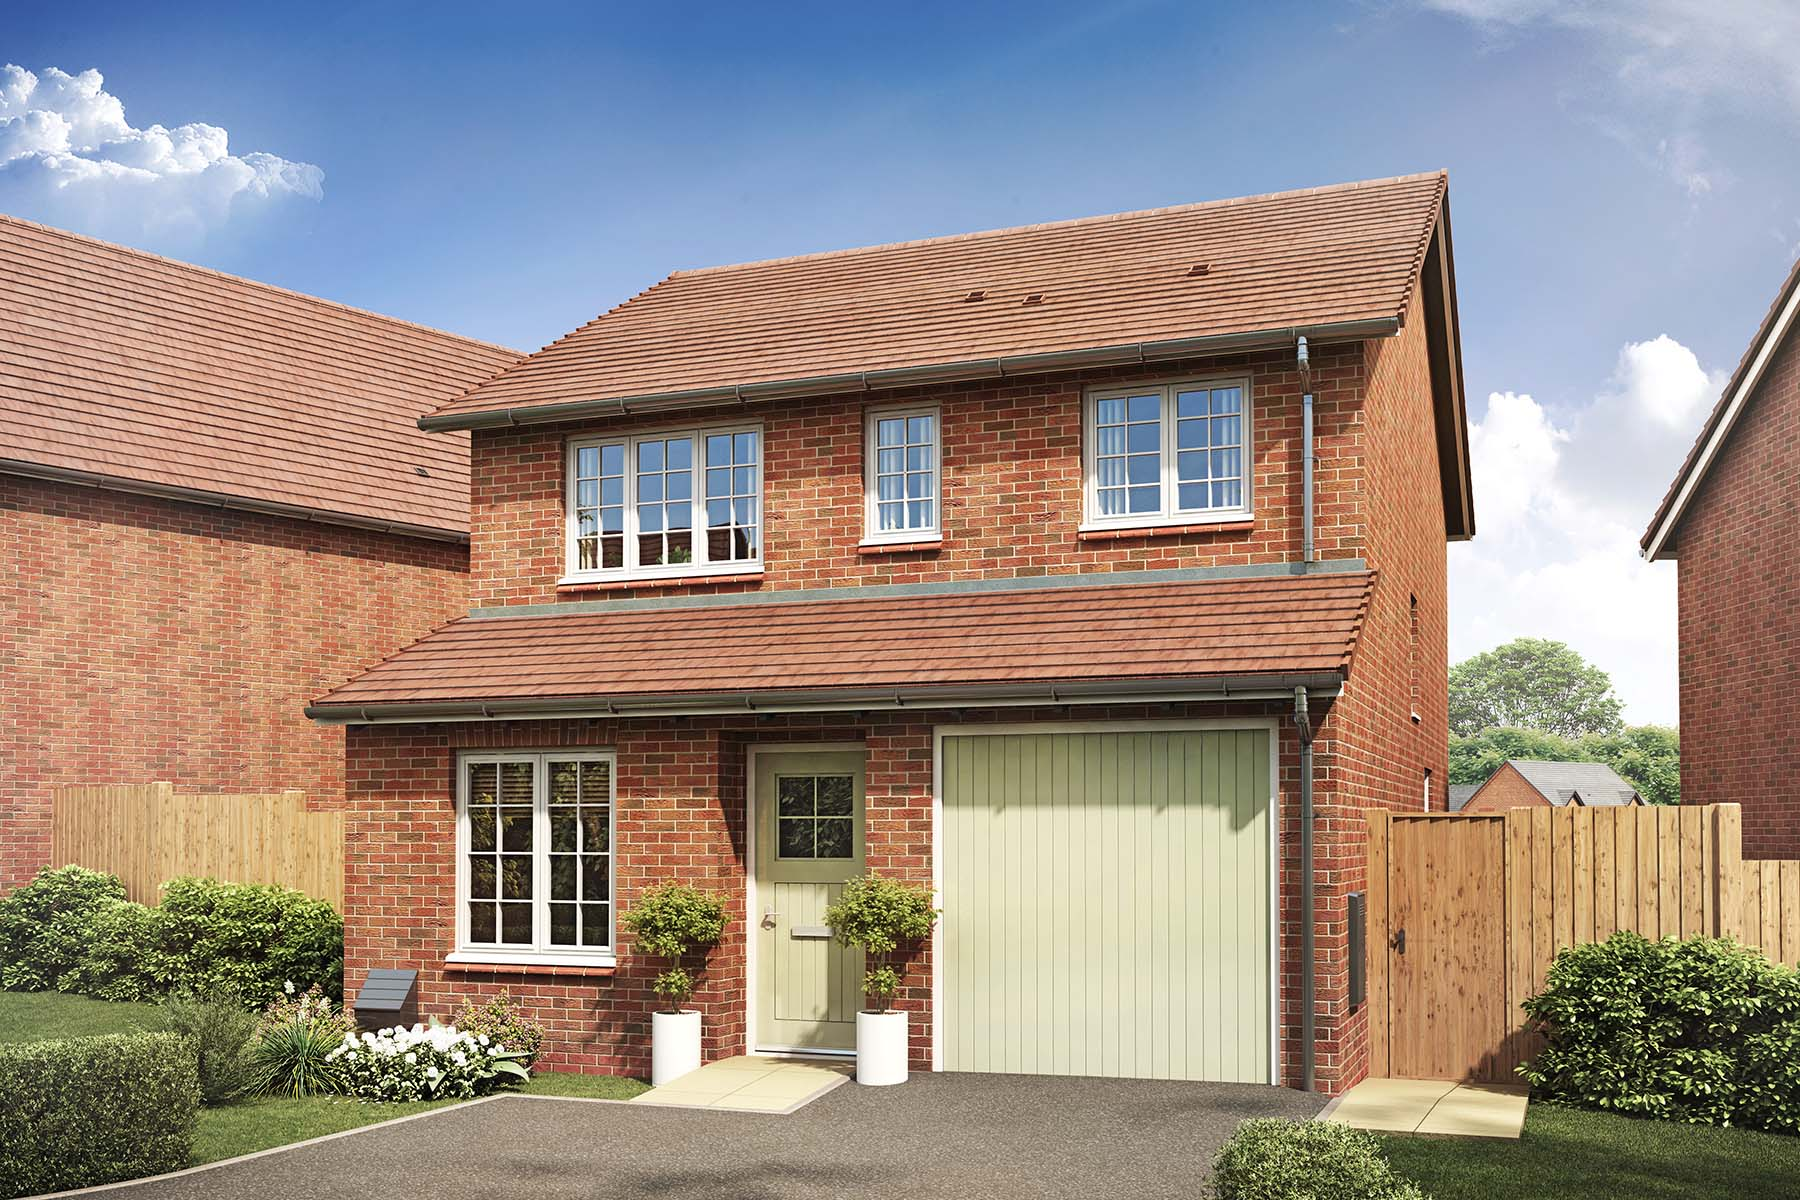 CGI-Mulberry-Lane-Aldenham-PD32-R1-plot-71